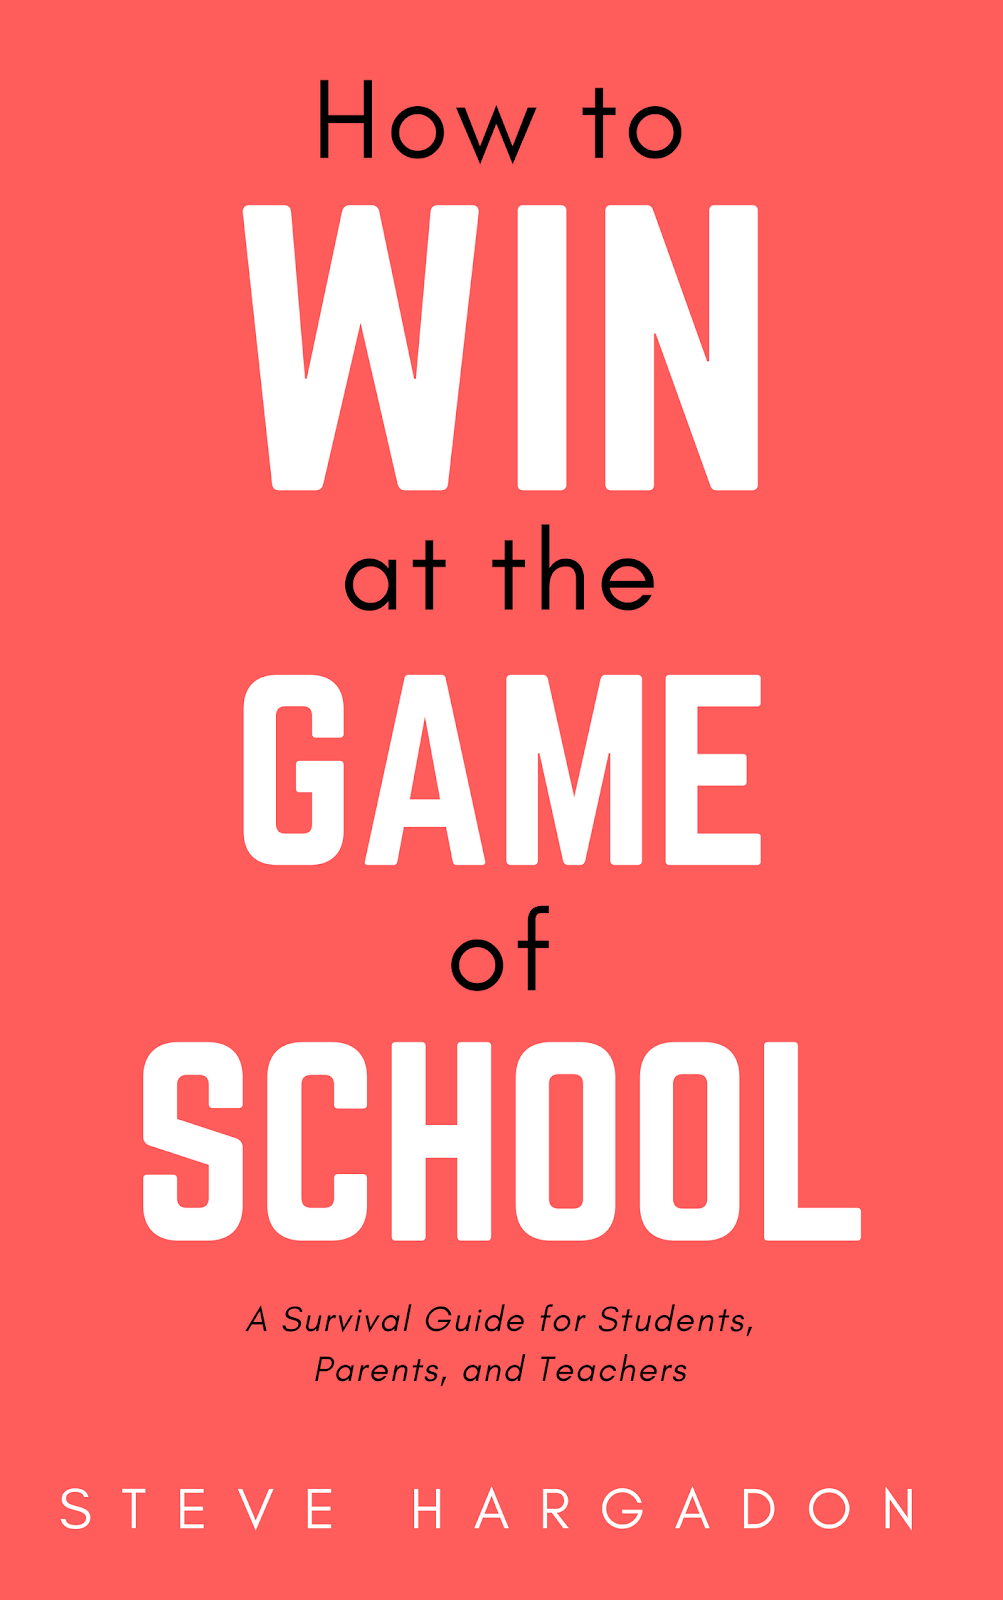 How to Win at the Game of School